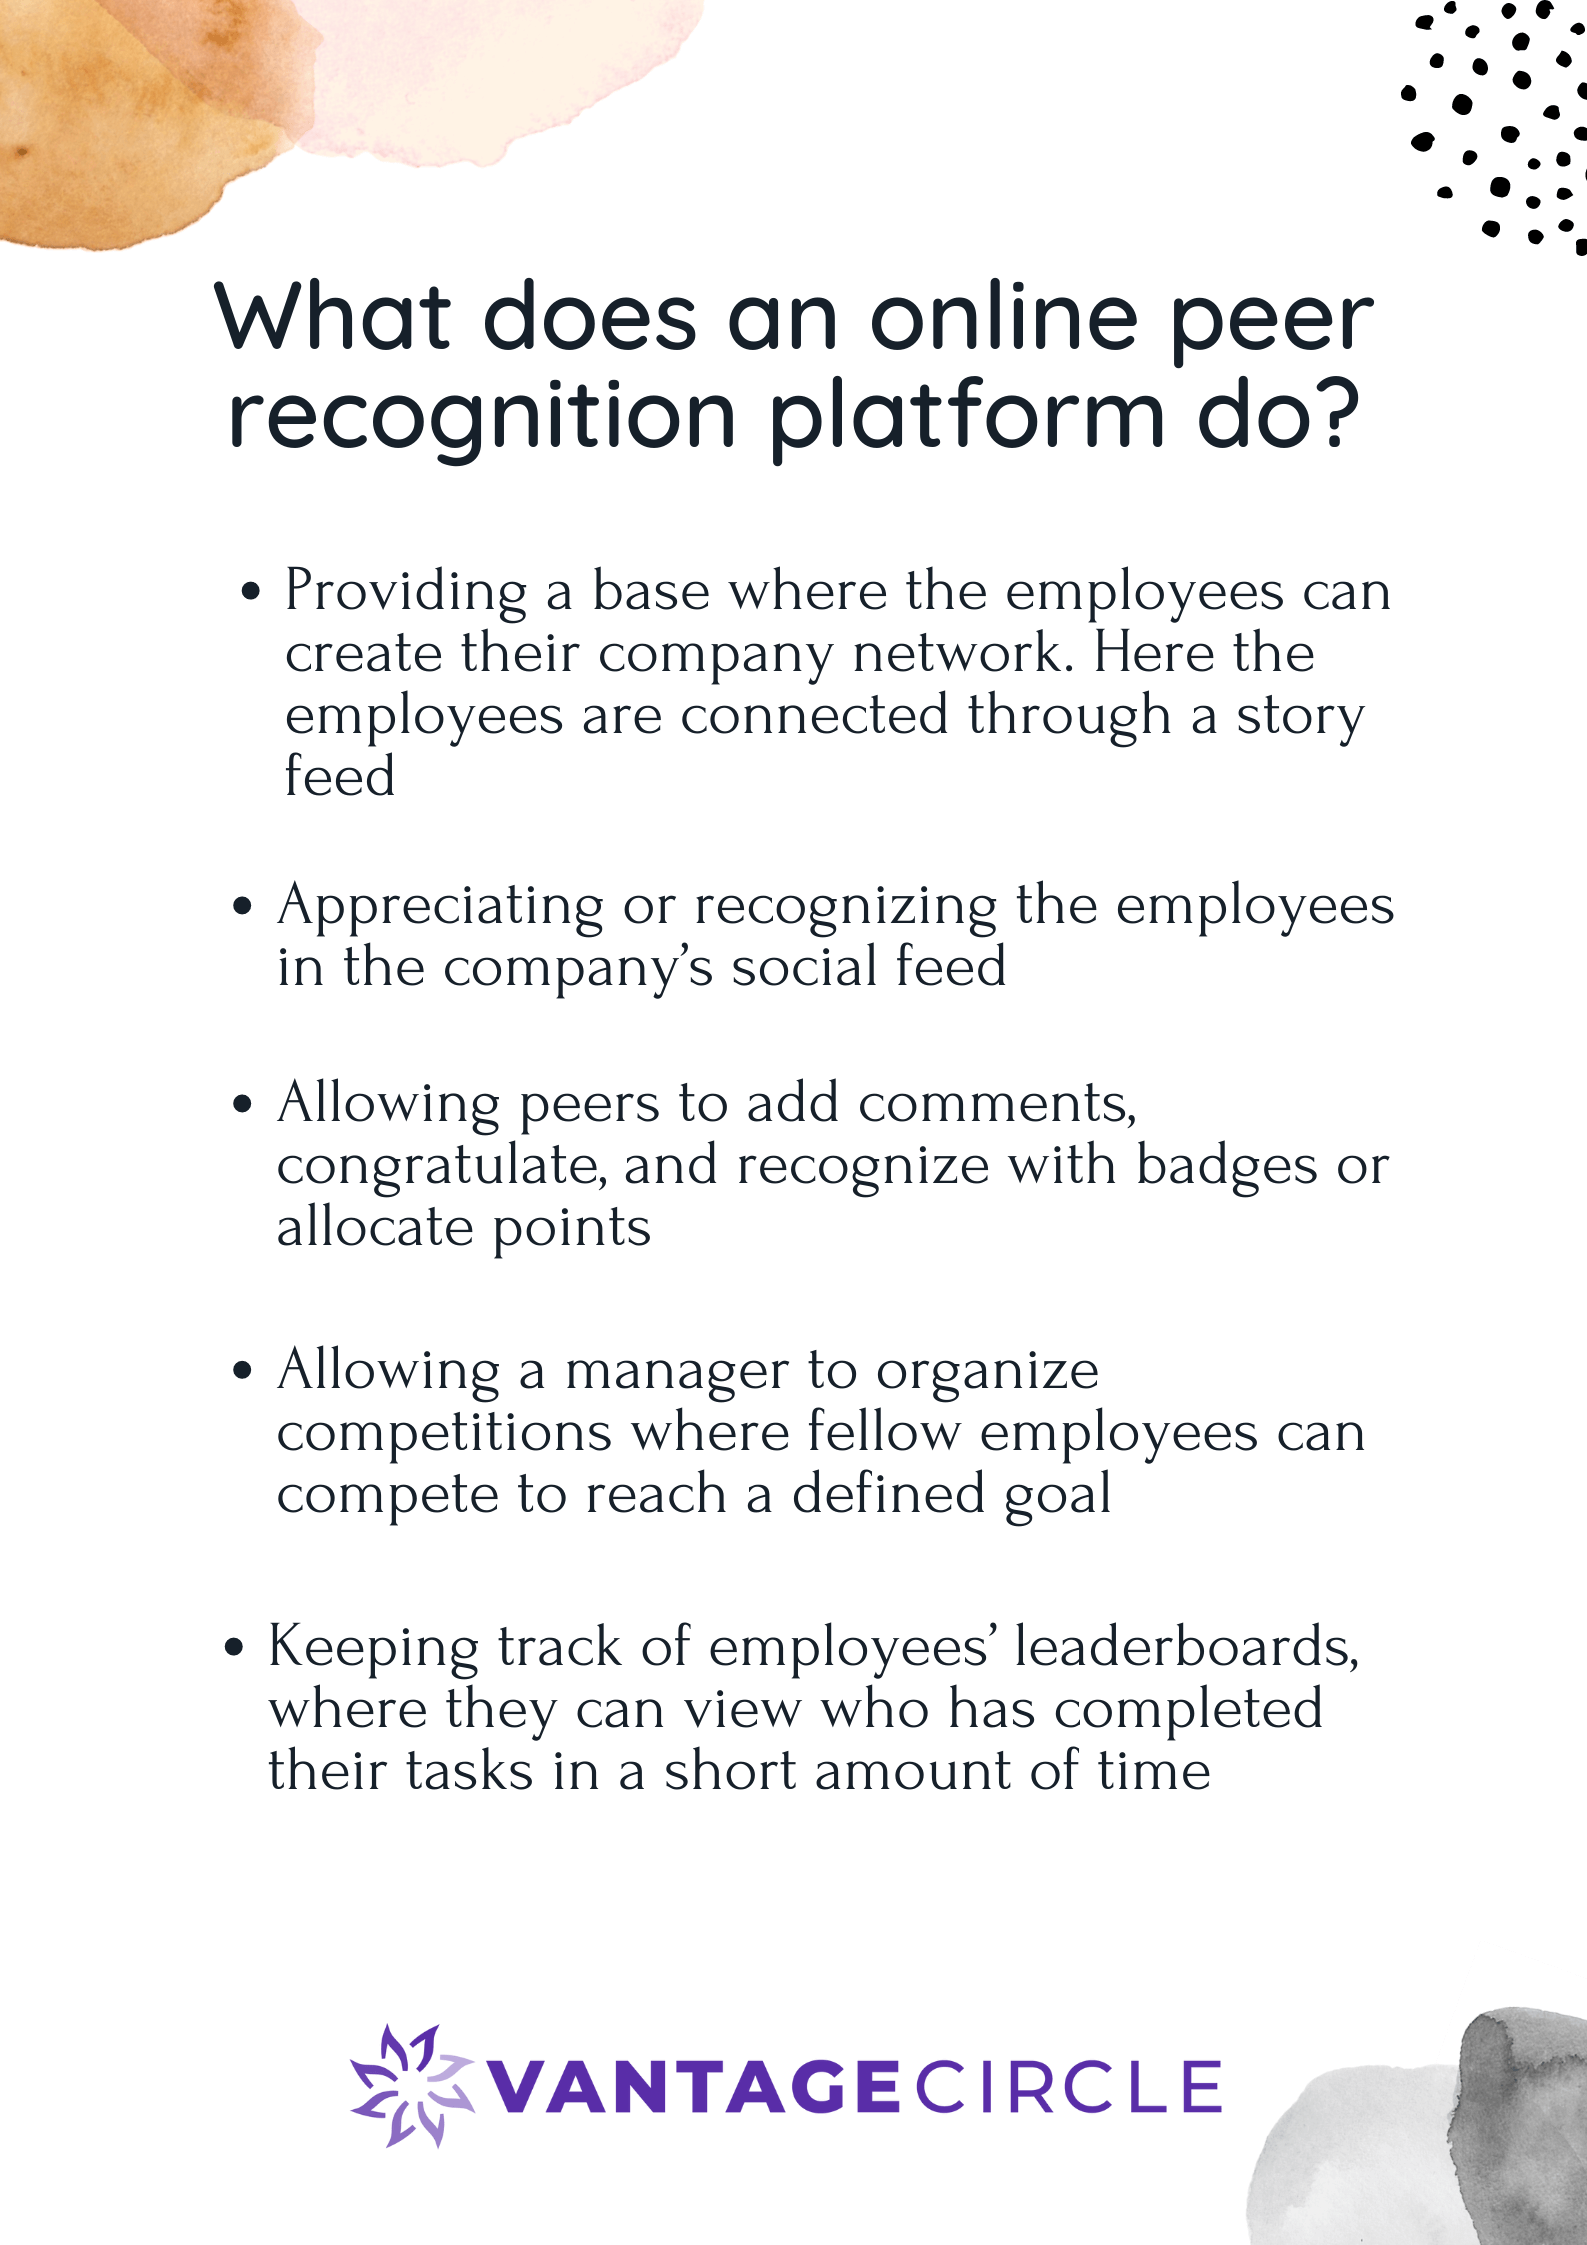 What-does-the-peer-recognition-platform-do-1